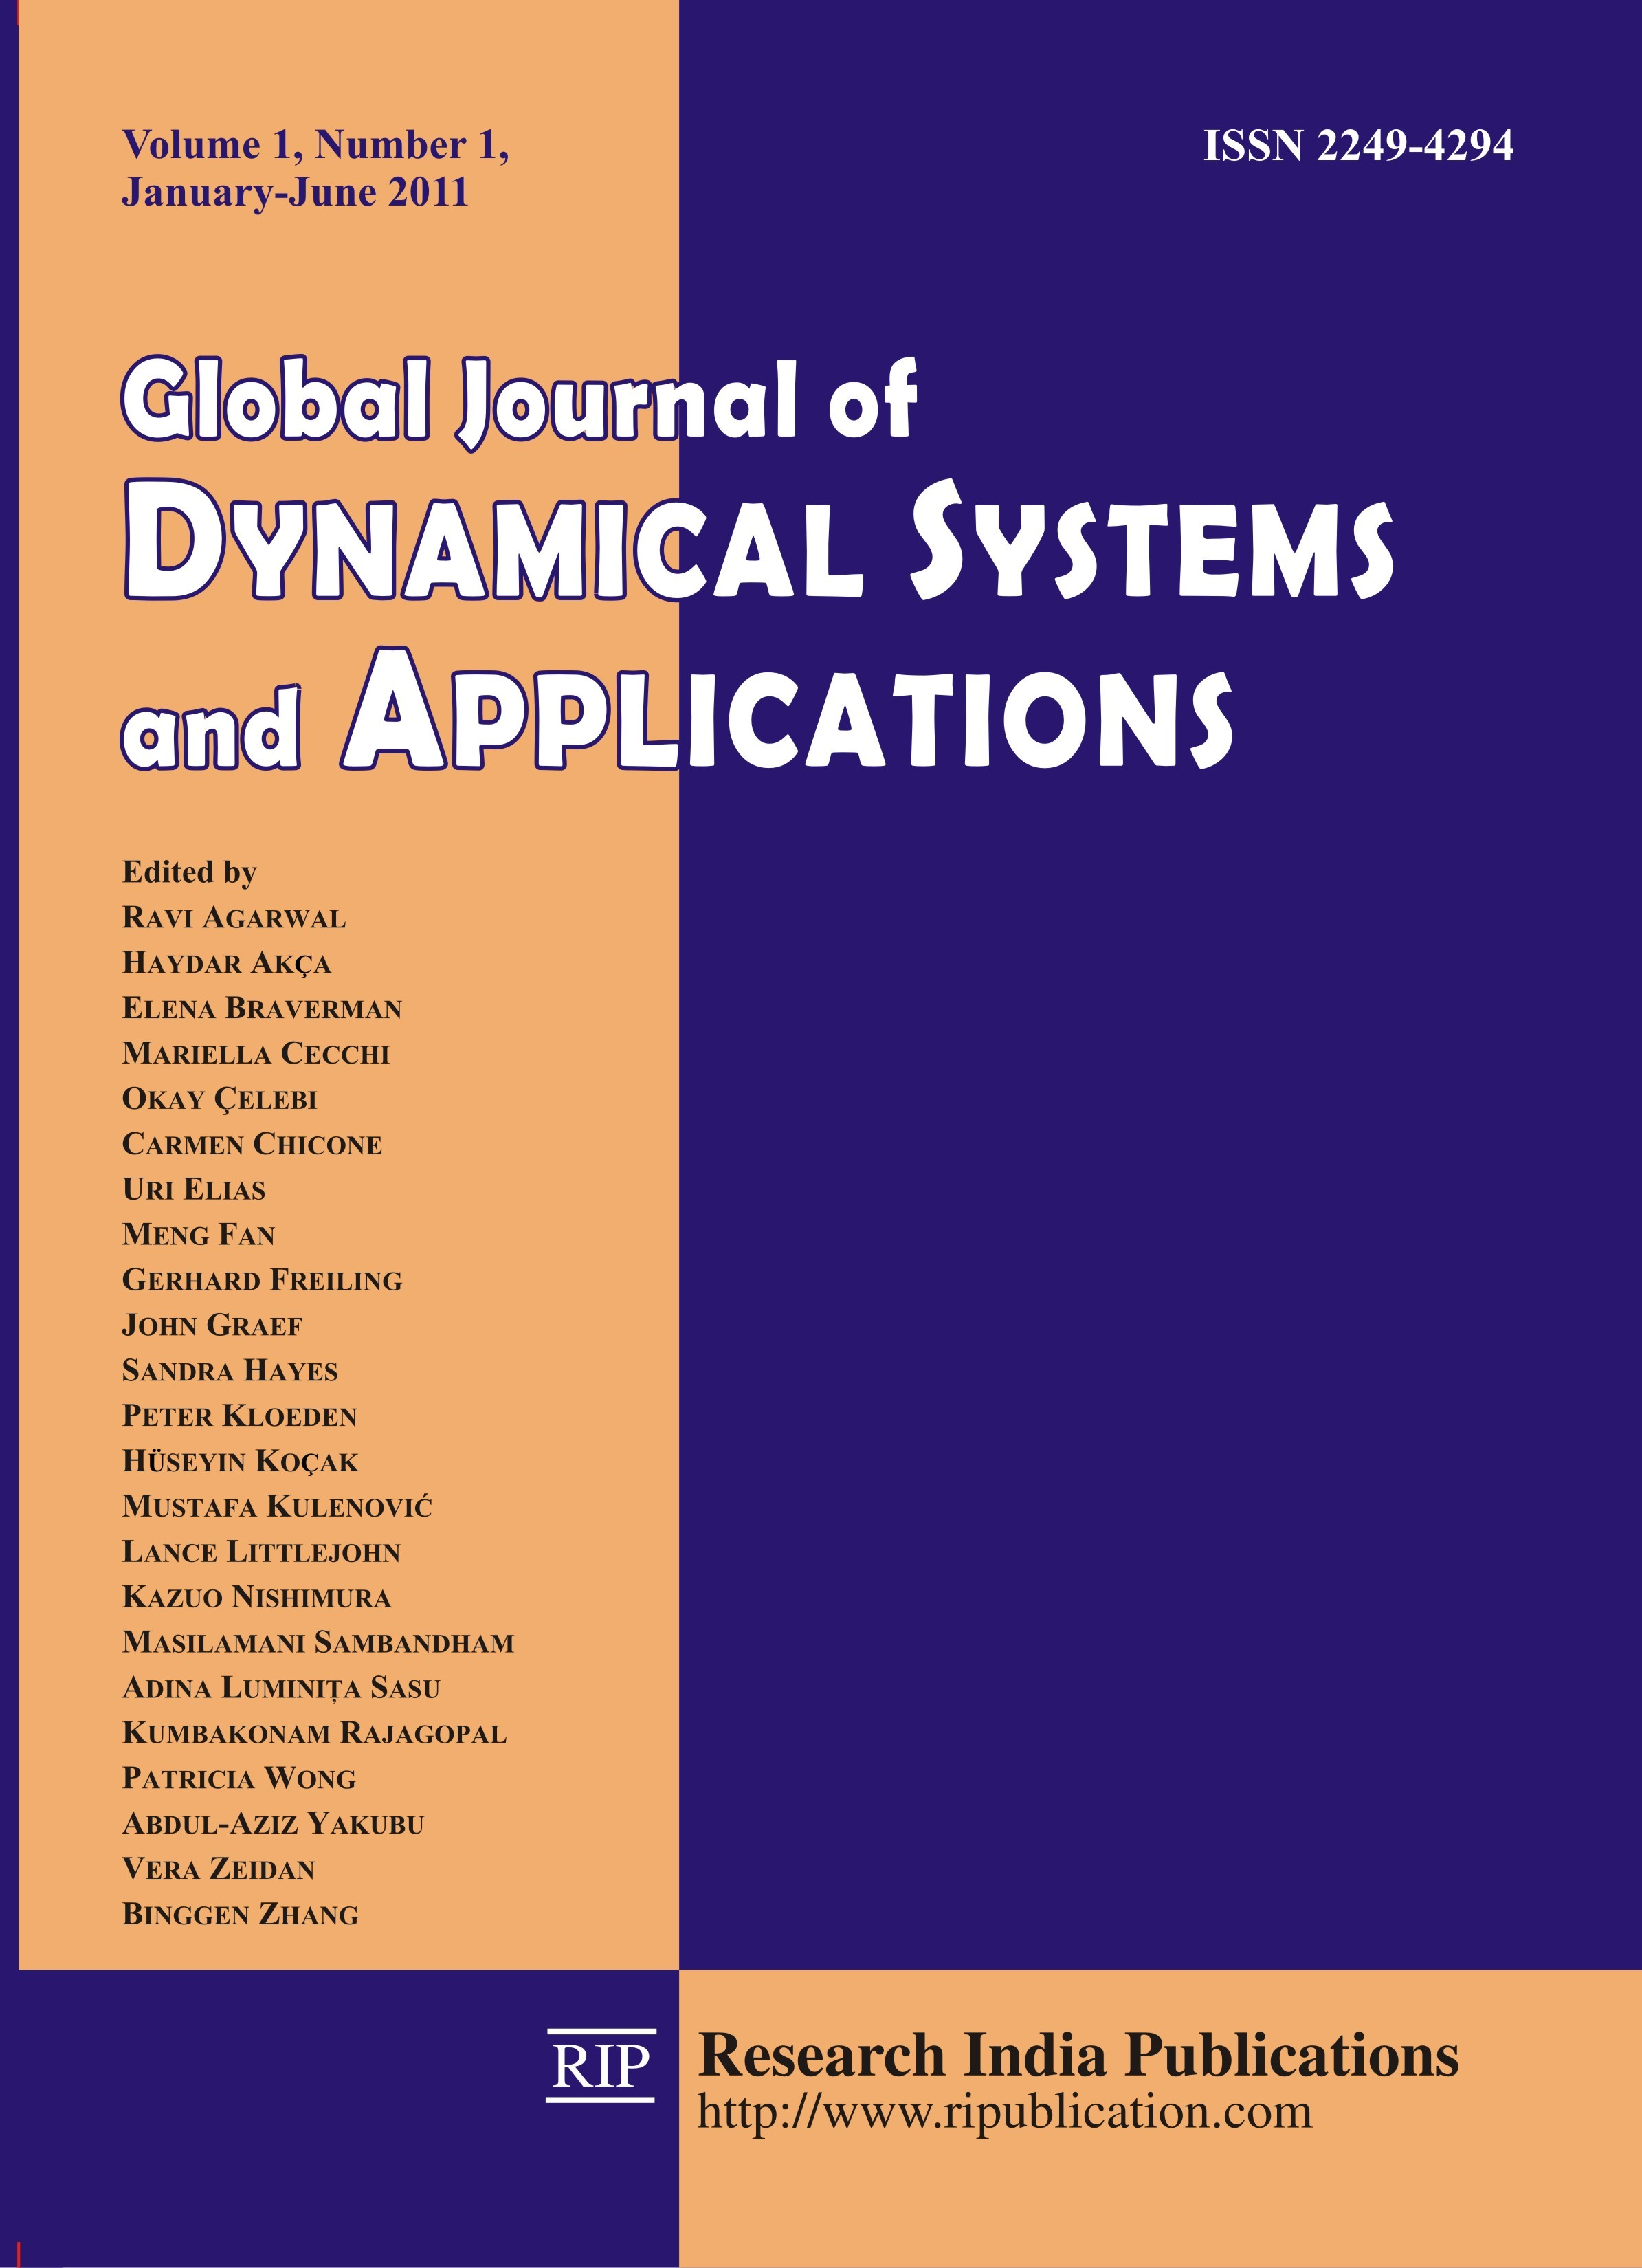 GJDSA, Global Journal of Dynamical System and Applications